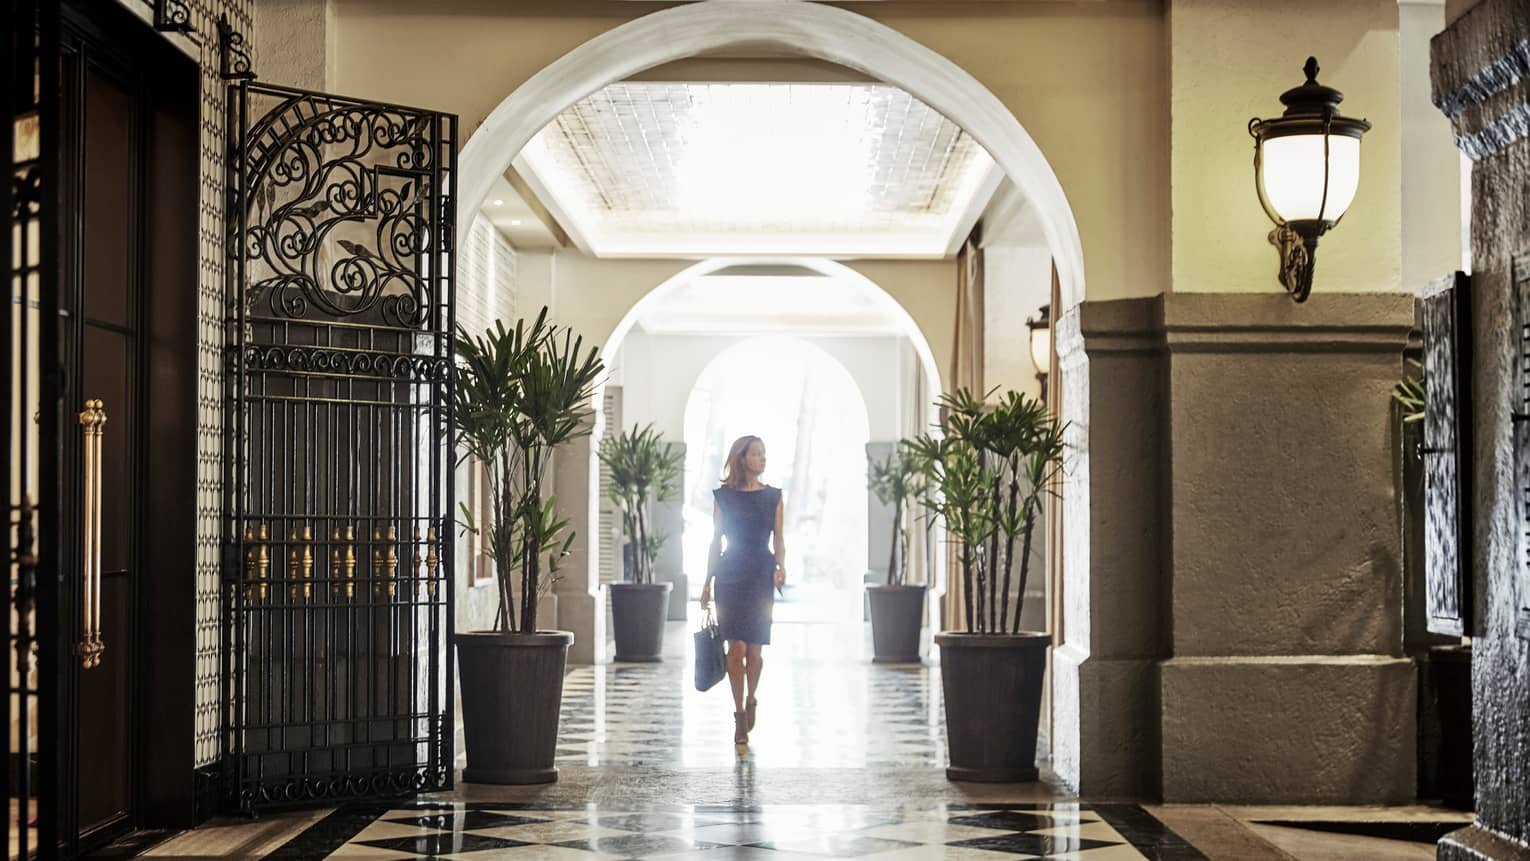 Woman in blue dress walks down sunny marble hall past wrought-iron doors